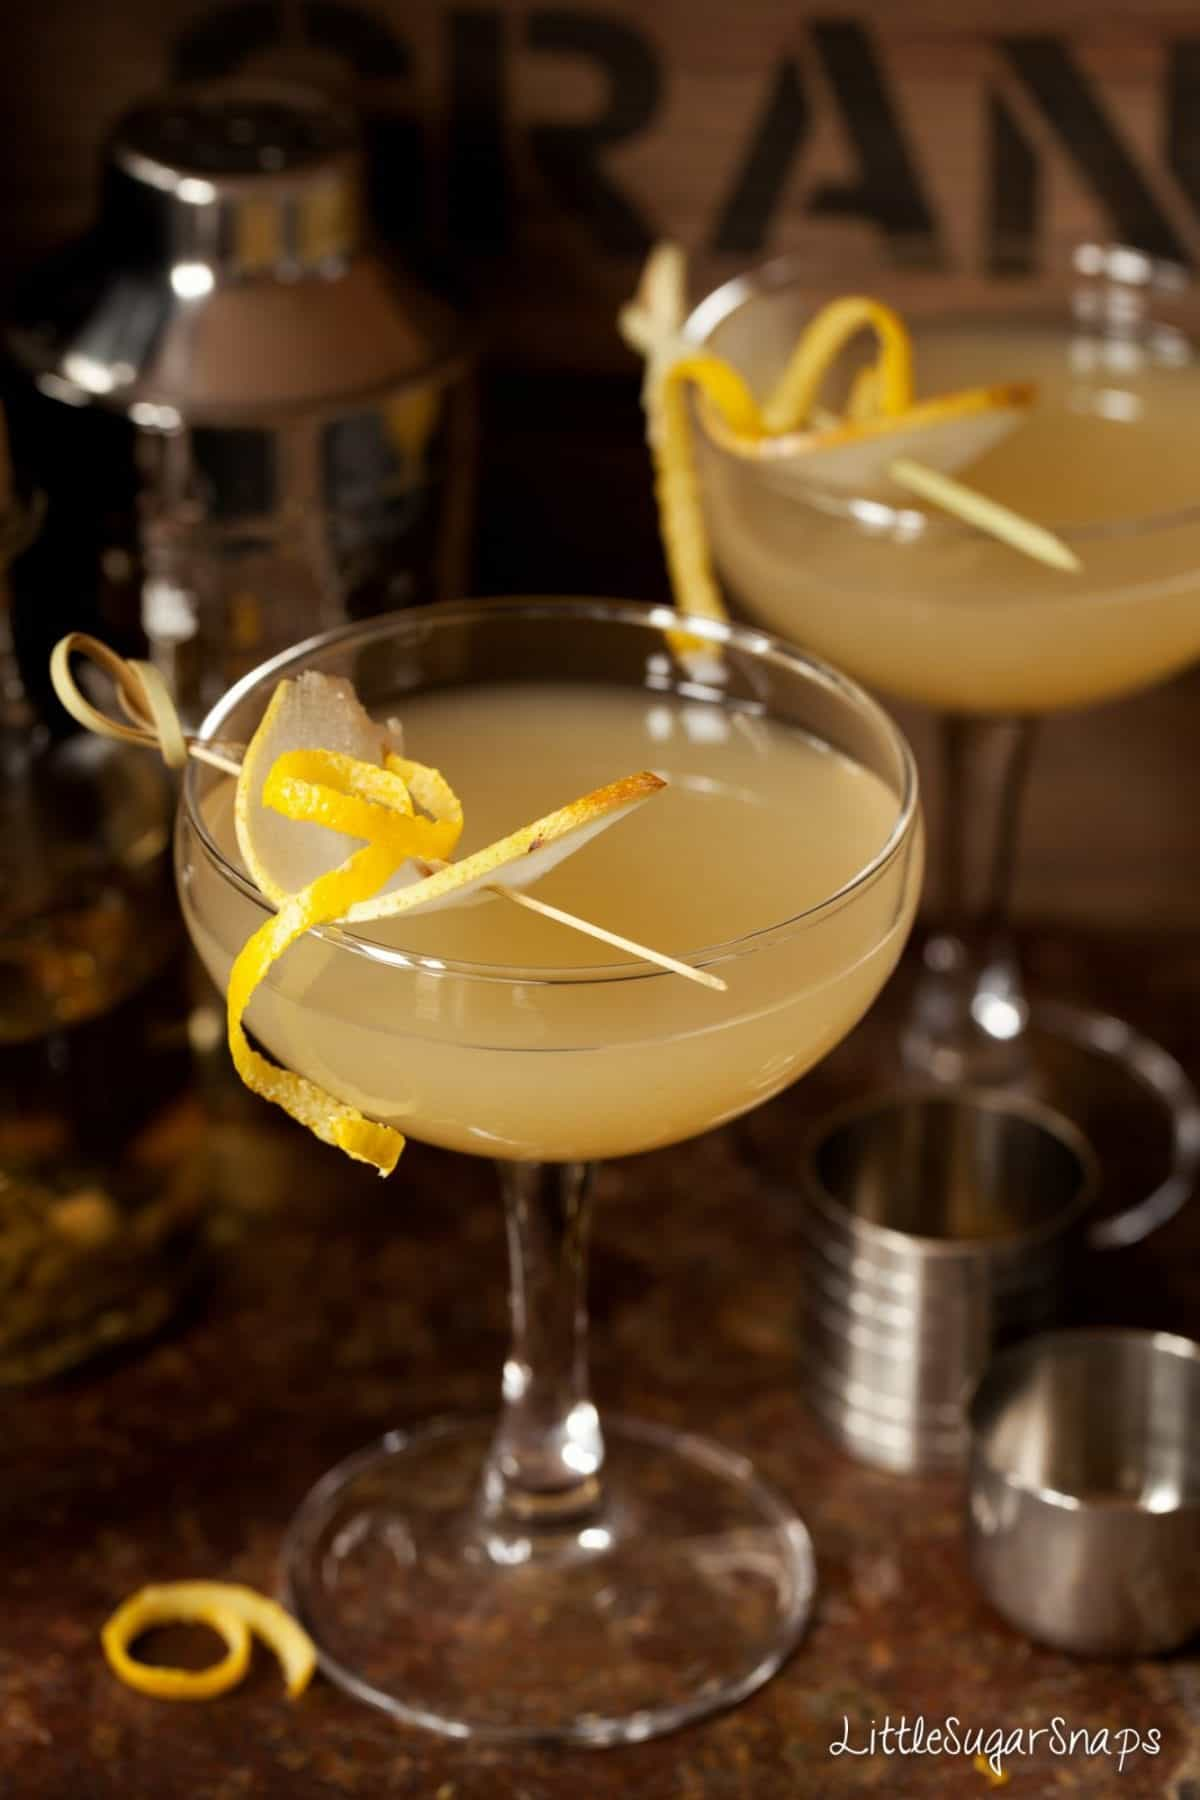 Pear Martini made with cardamom vodka and garnished with pear